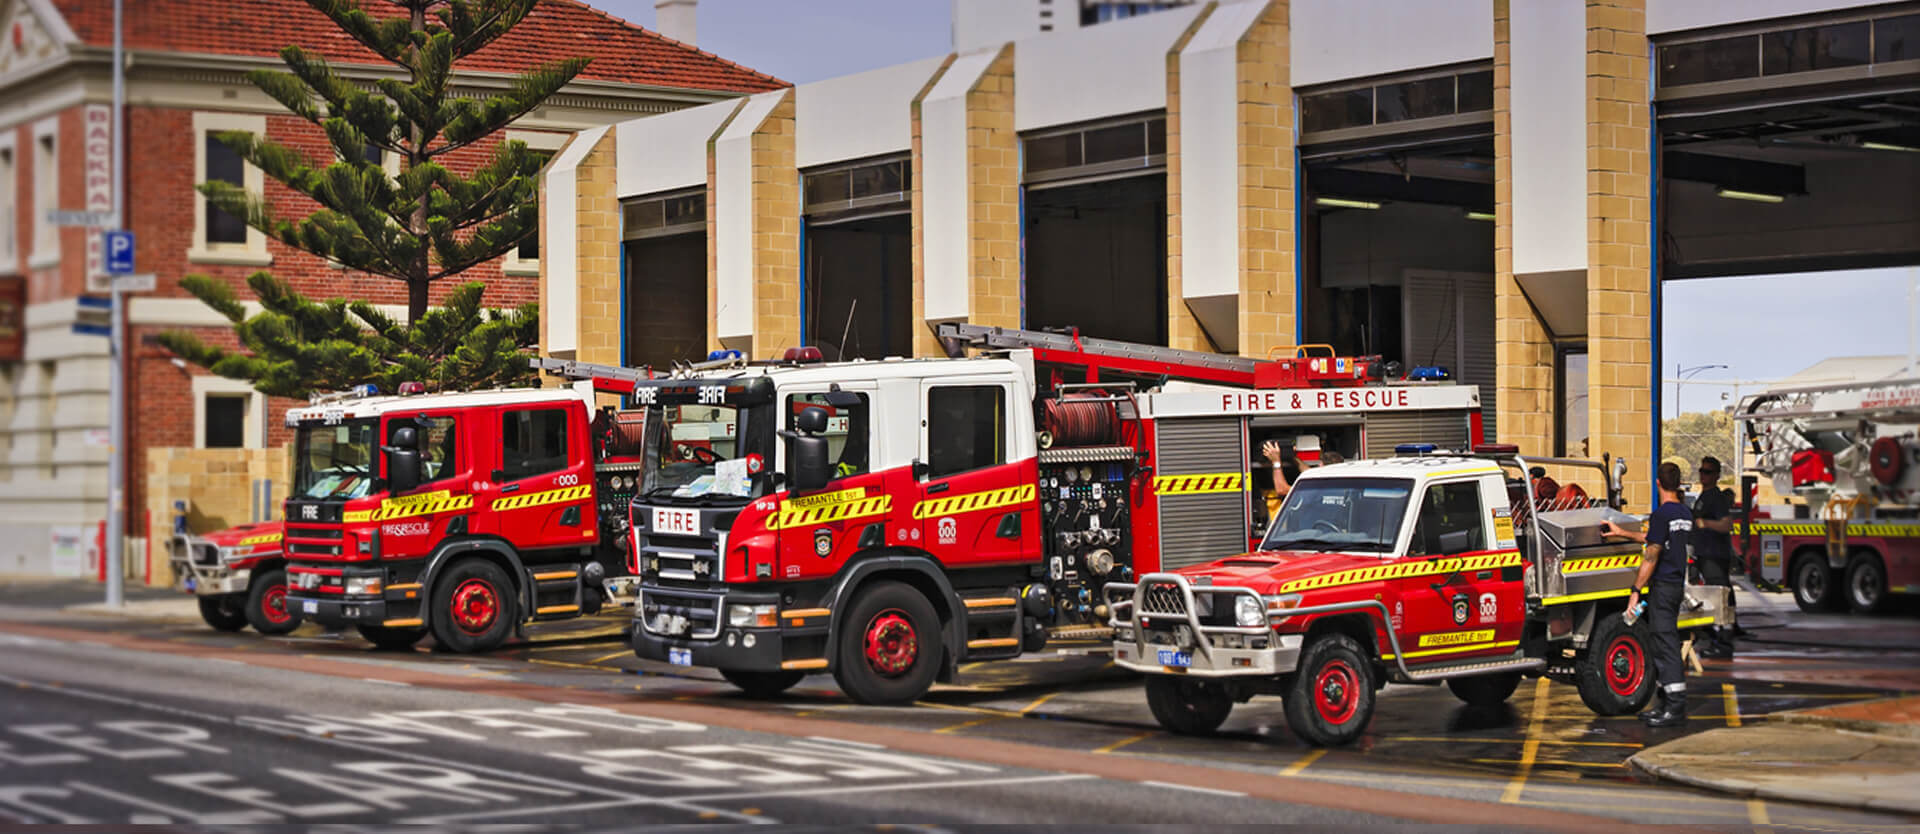 Fire Rescue Safety Australia | FRSA